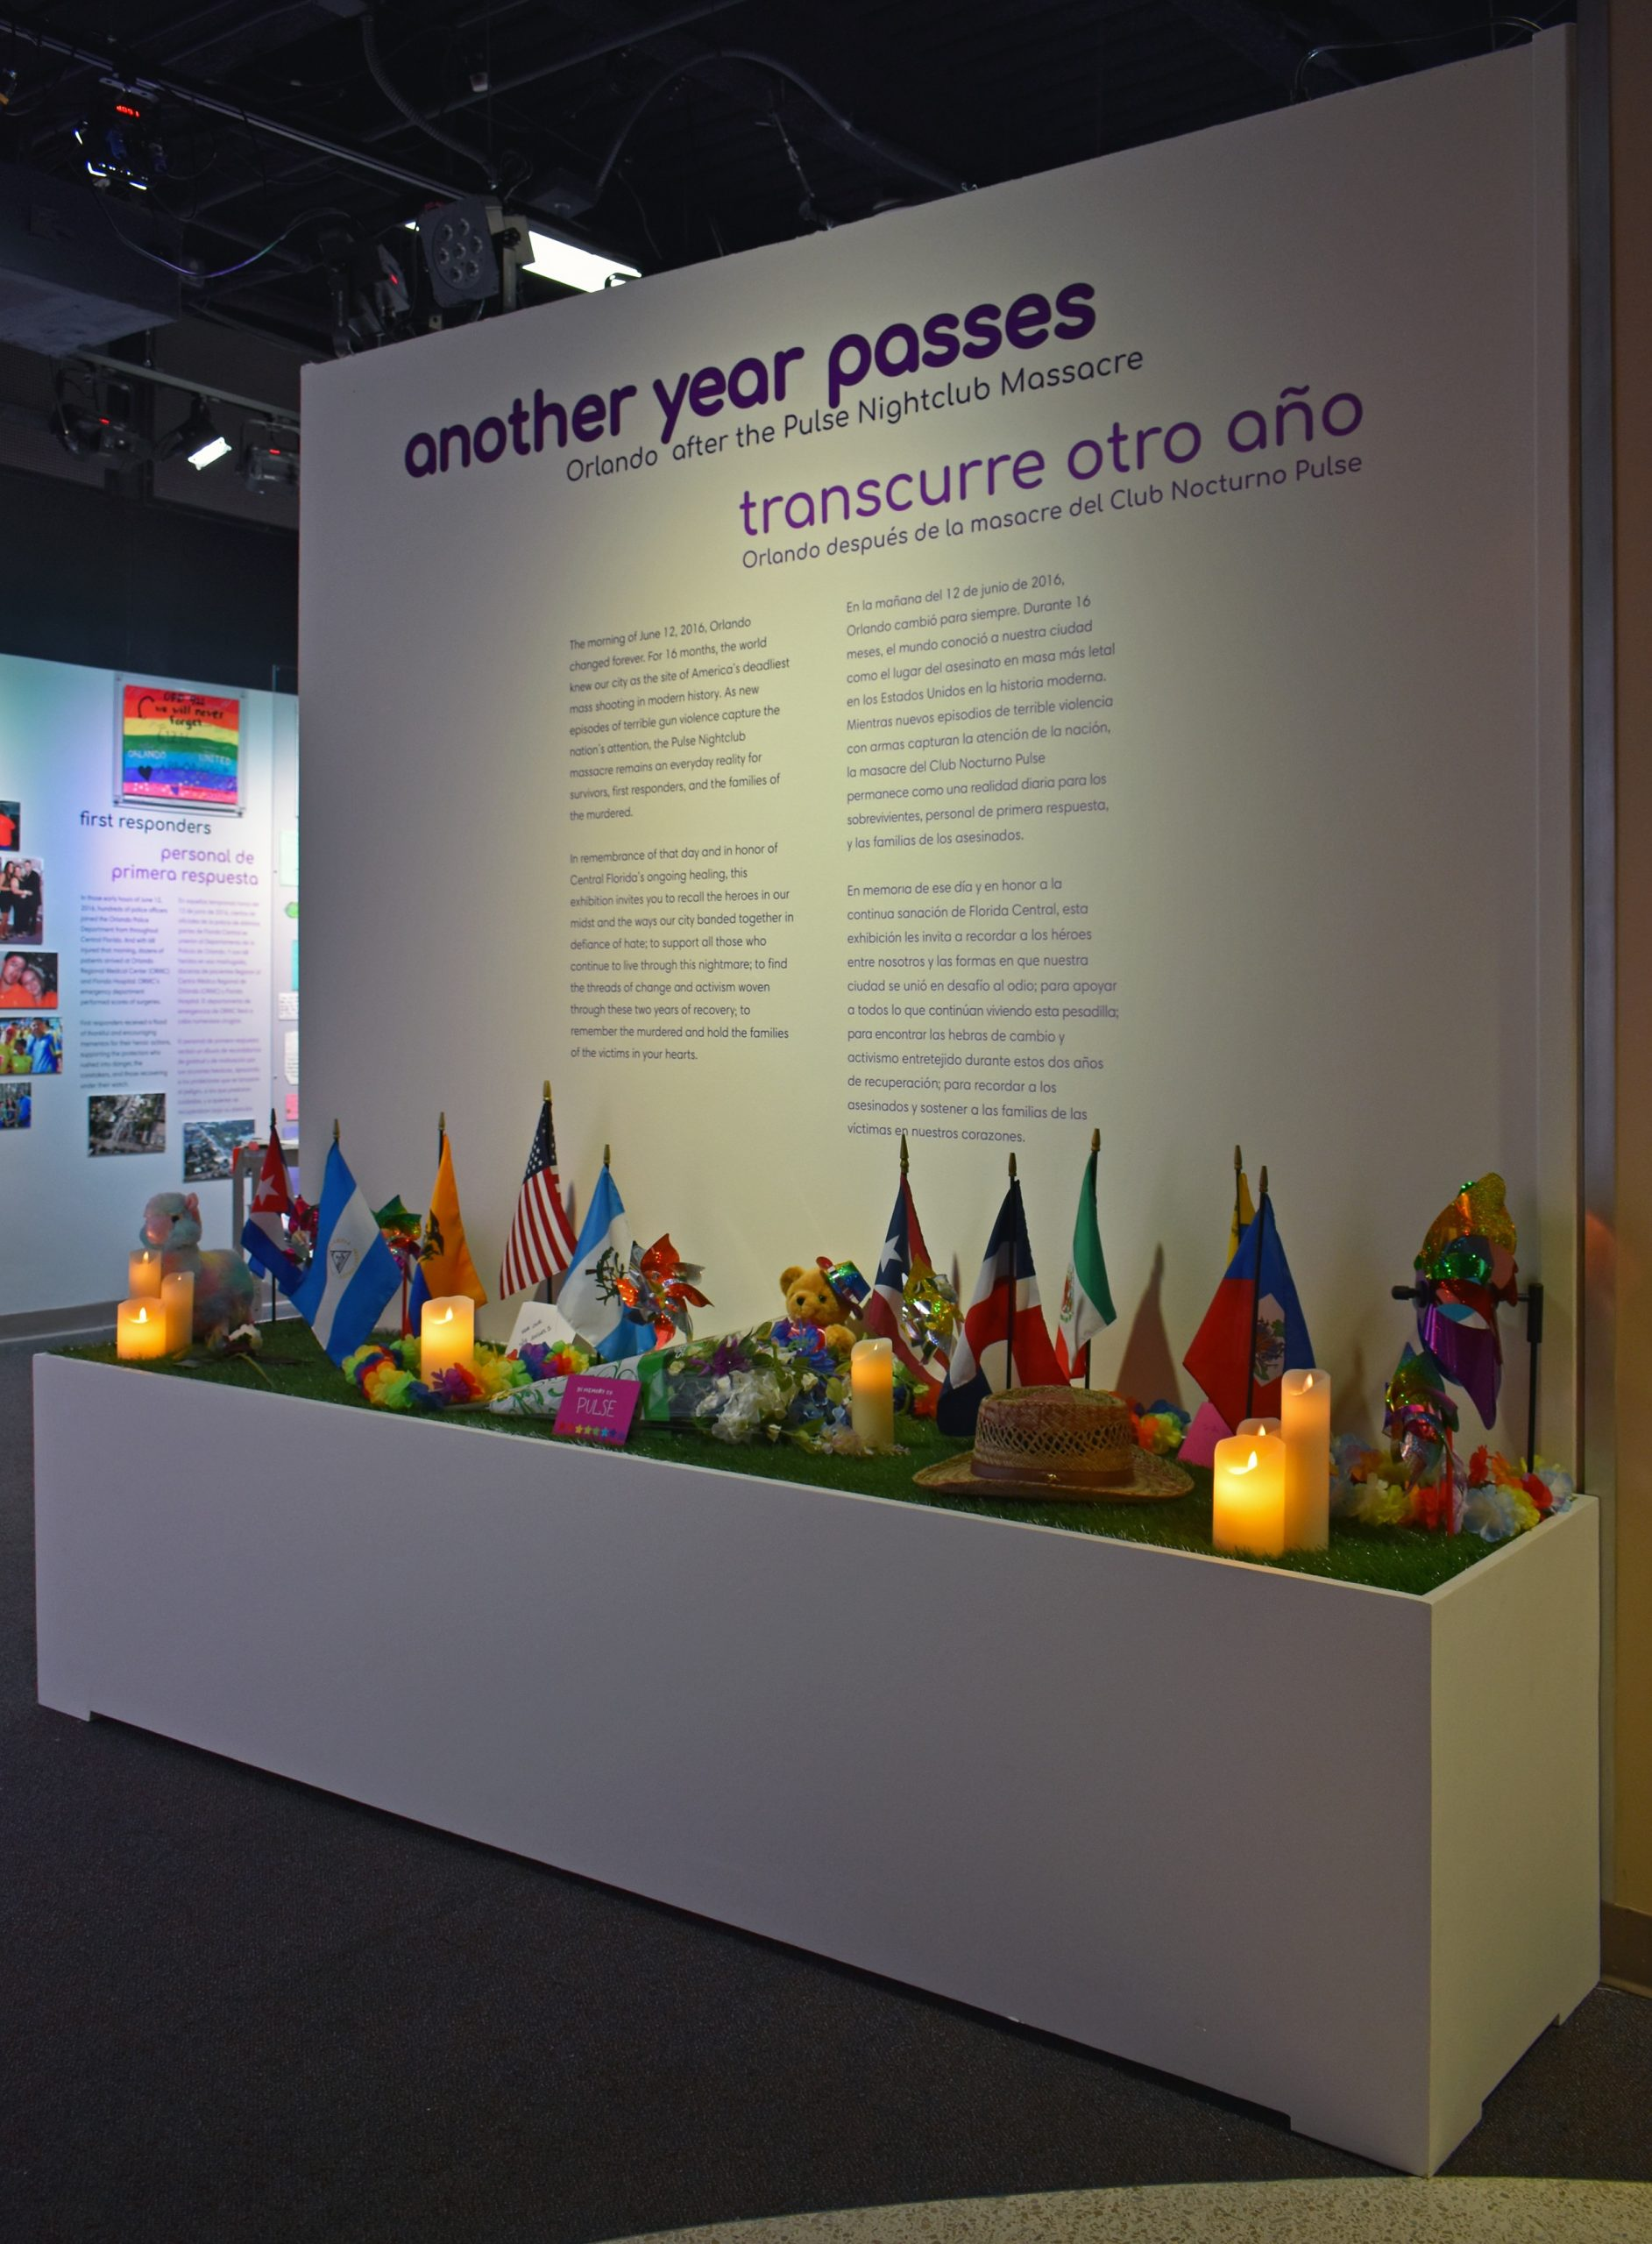 Another Year Passes Exhibition Introduction